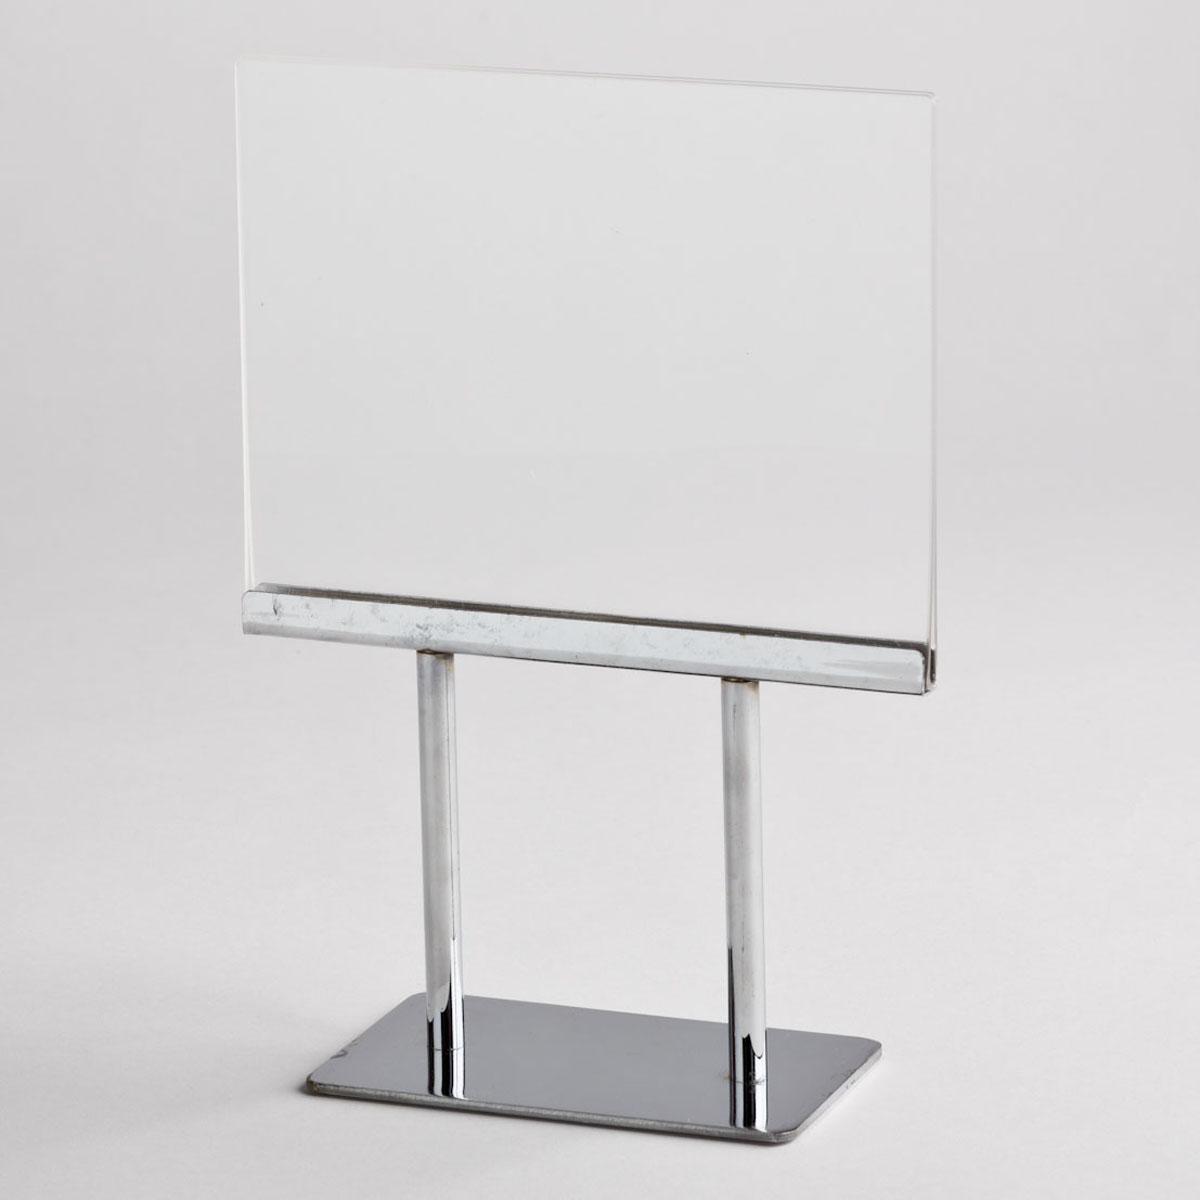 Sign Holders and Counter Easels | A&B Store Fixtures